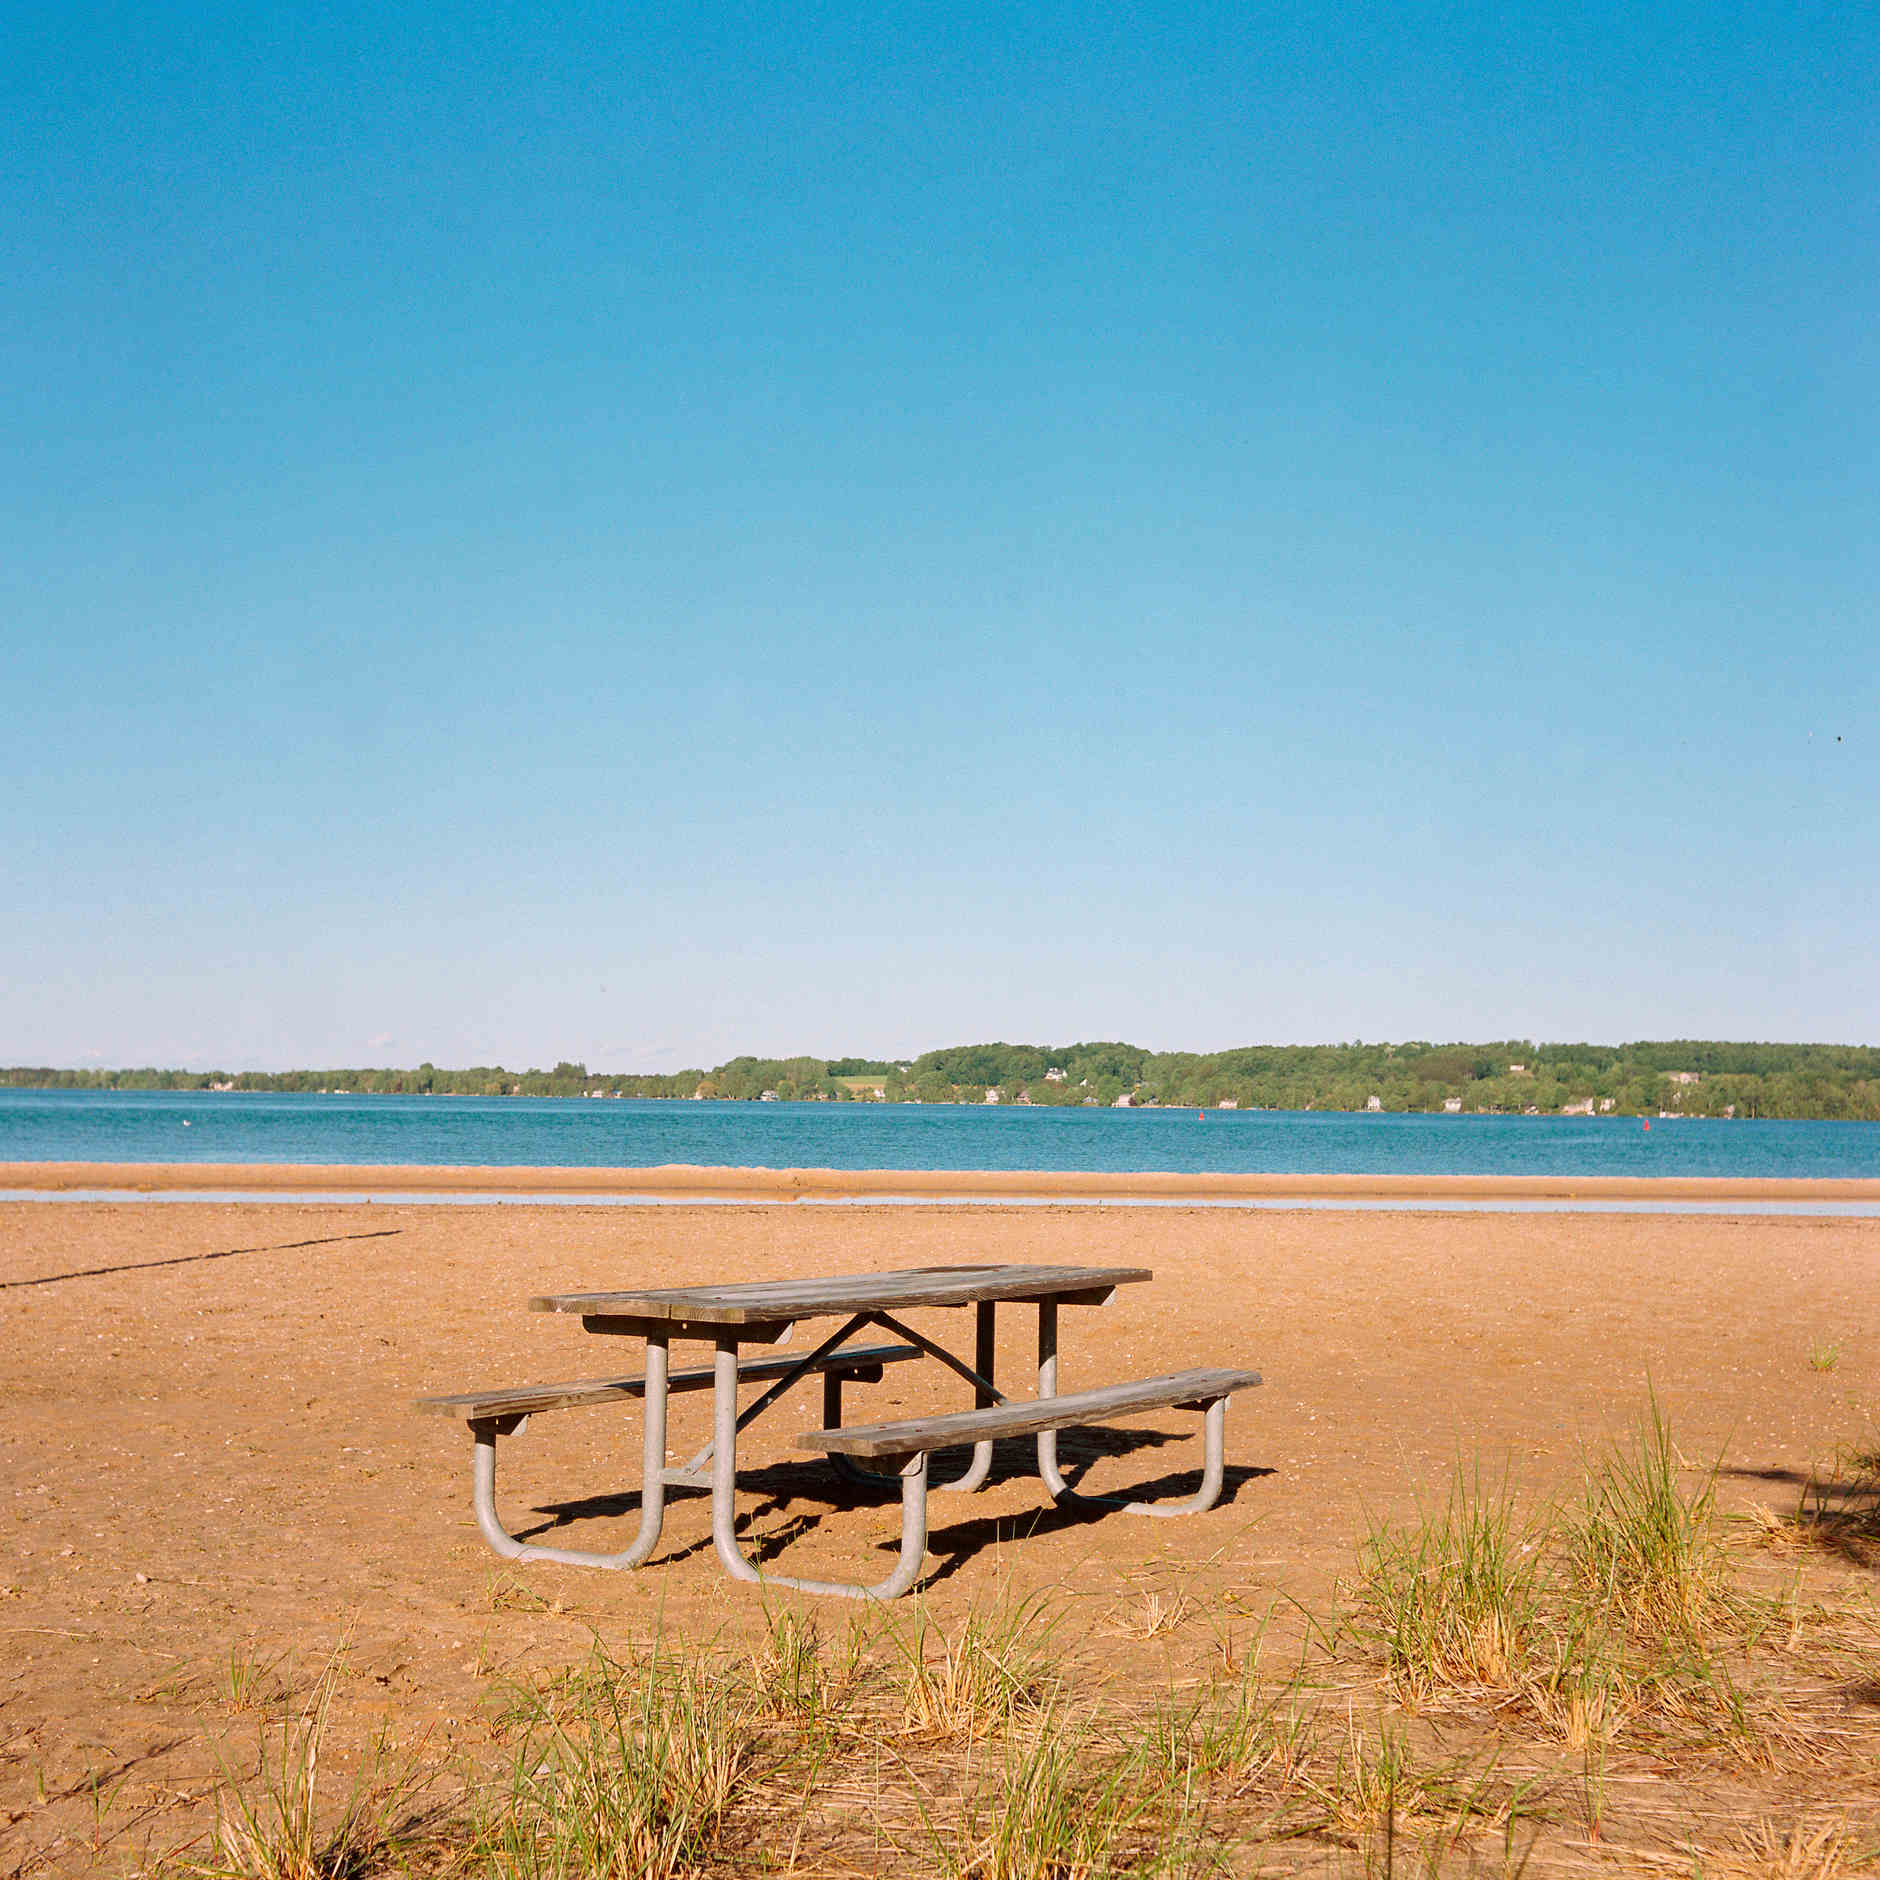 Suttons Bay Beach is pictured in Suttons Bay, Michigan on Monday, June 10, 2019. (Photo by James Brosher)